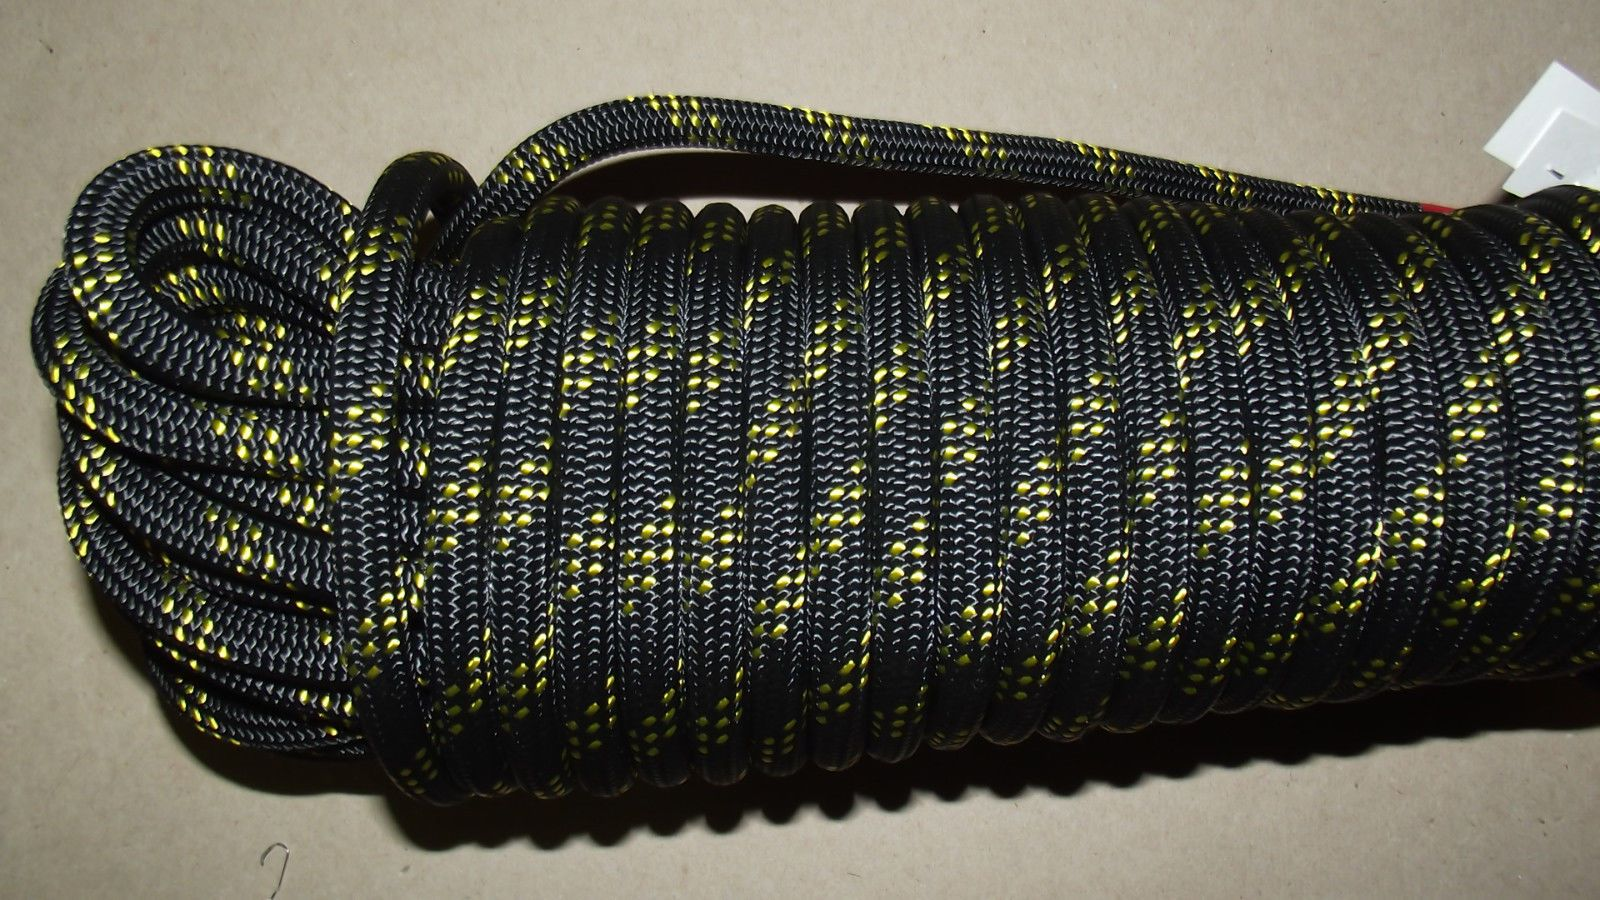 Ropes Cords and Slings 50816: New 7 16 (11Mm) X 53 Kernmantle Static Line, Climbing Rope -> BUY IT NOW ONLY: $34 on eBay!